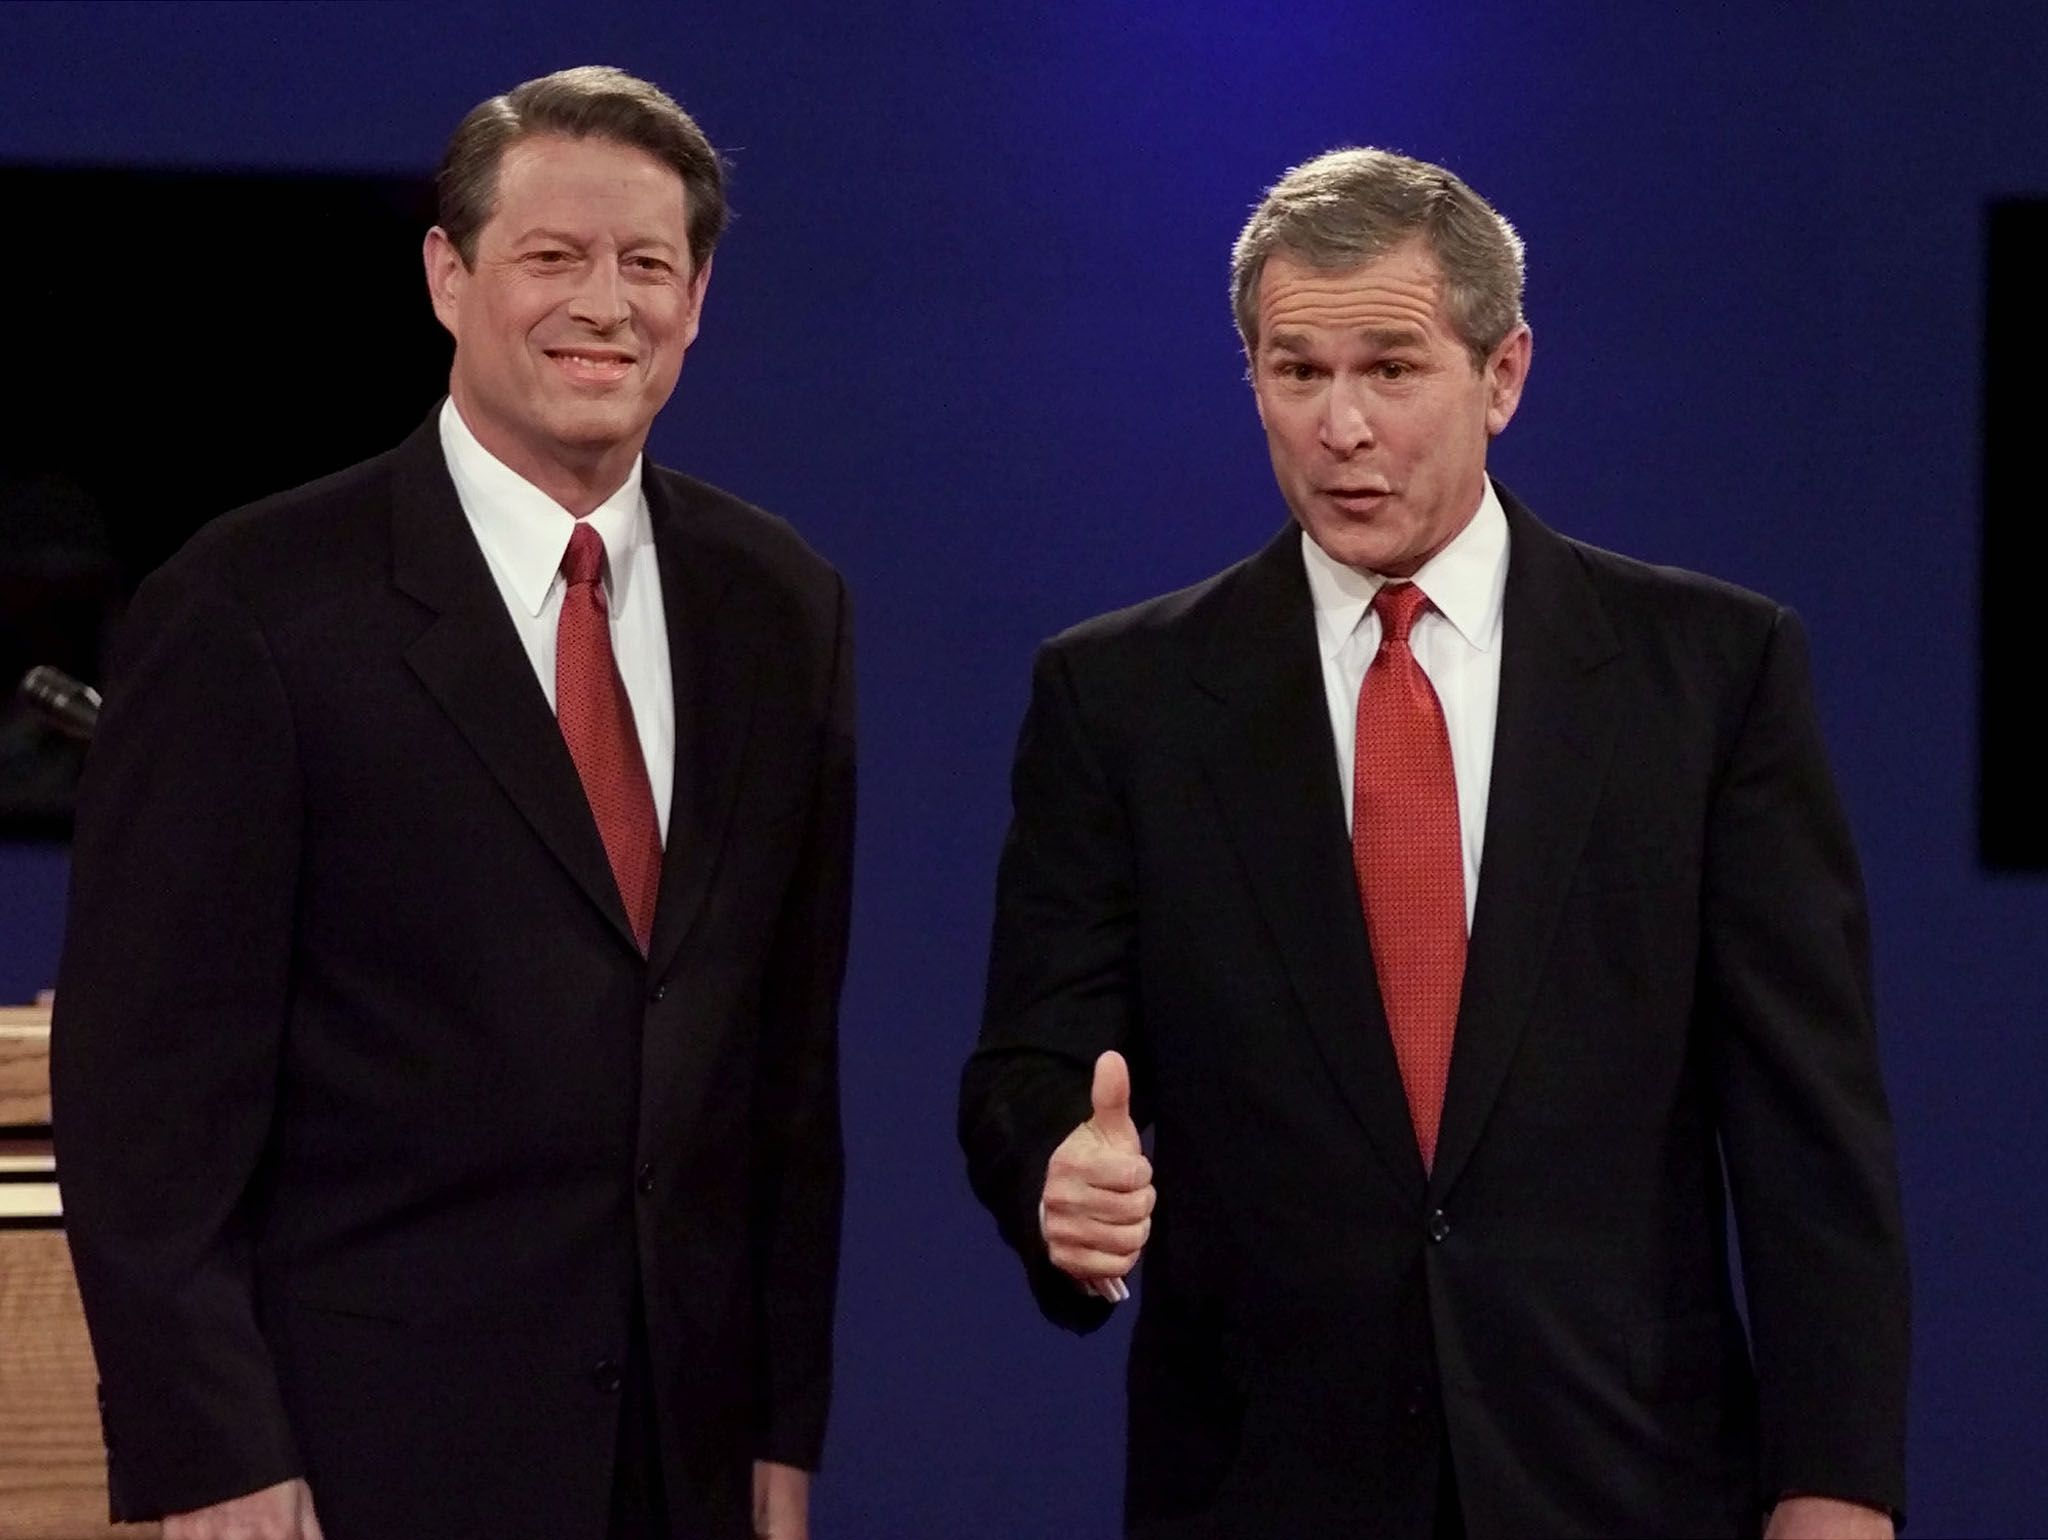 a comparison of presidential debates between bush and gore Examined carefully, the similarities between the two political parties do not  to  the commentary following the upcoming bush/gore debates.